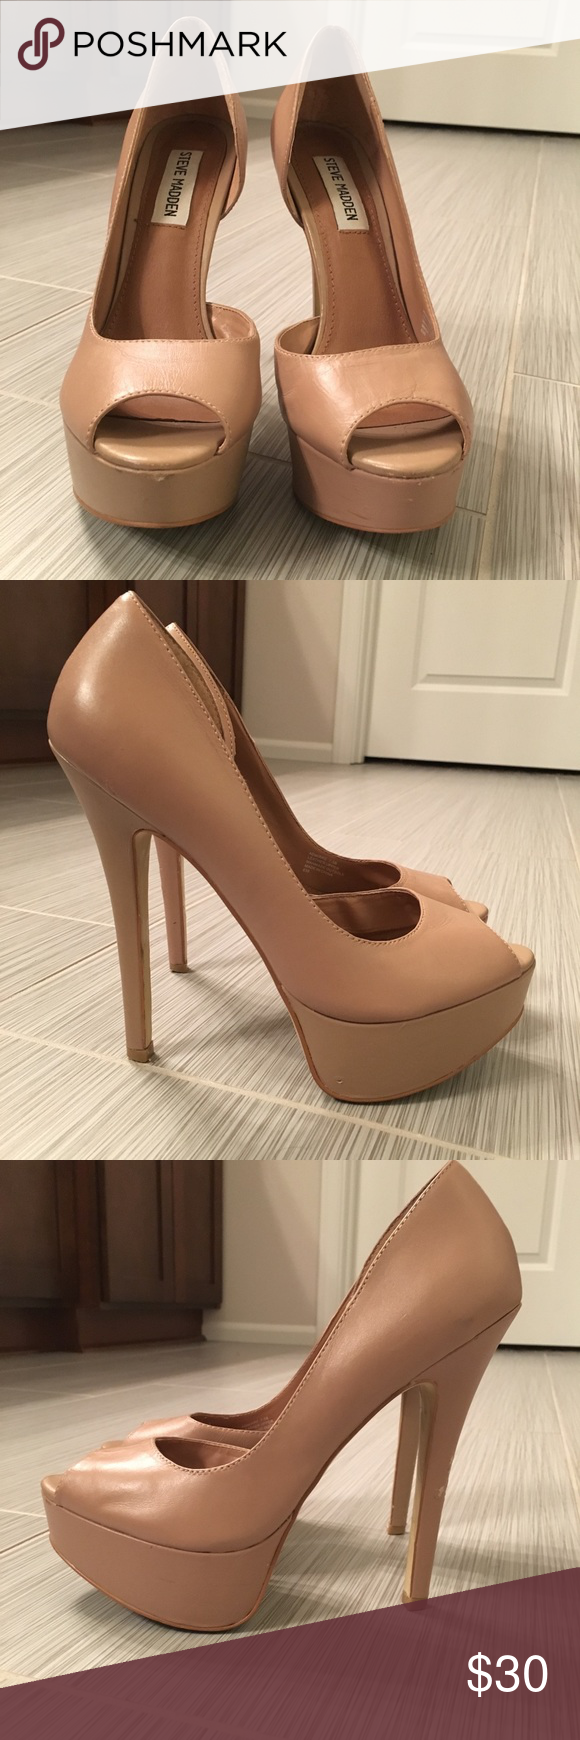 b9b156a2d85 Steve Madden Admirre Perfect go-to nude peep toe pumps. Leather ...